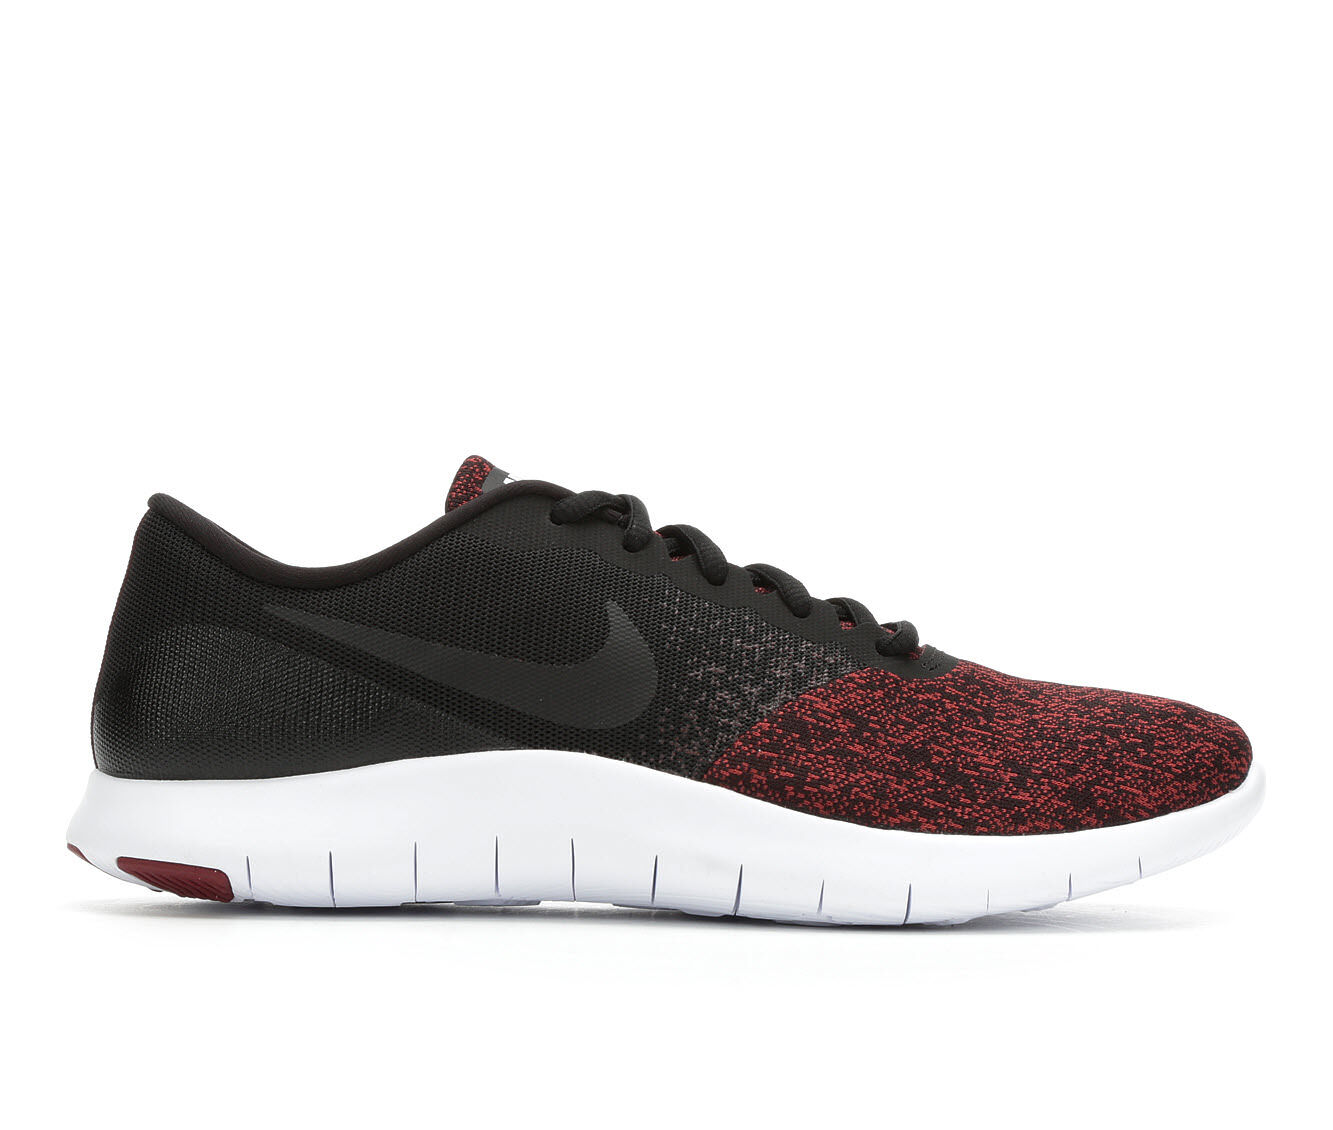 buy authentic Men's Nike Flex Contact Running Shoes Blk/Blk/Red